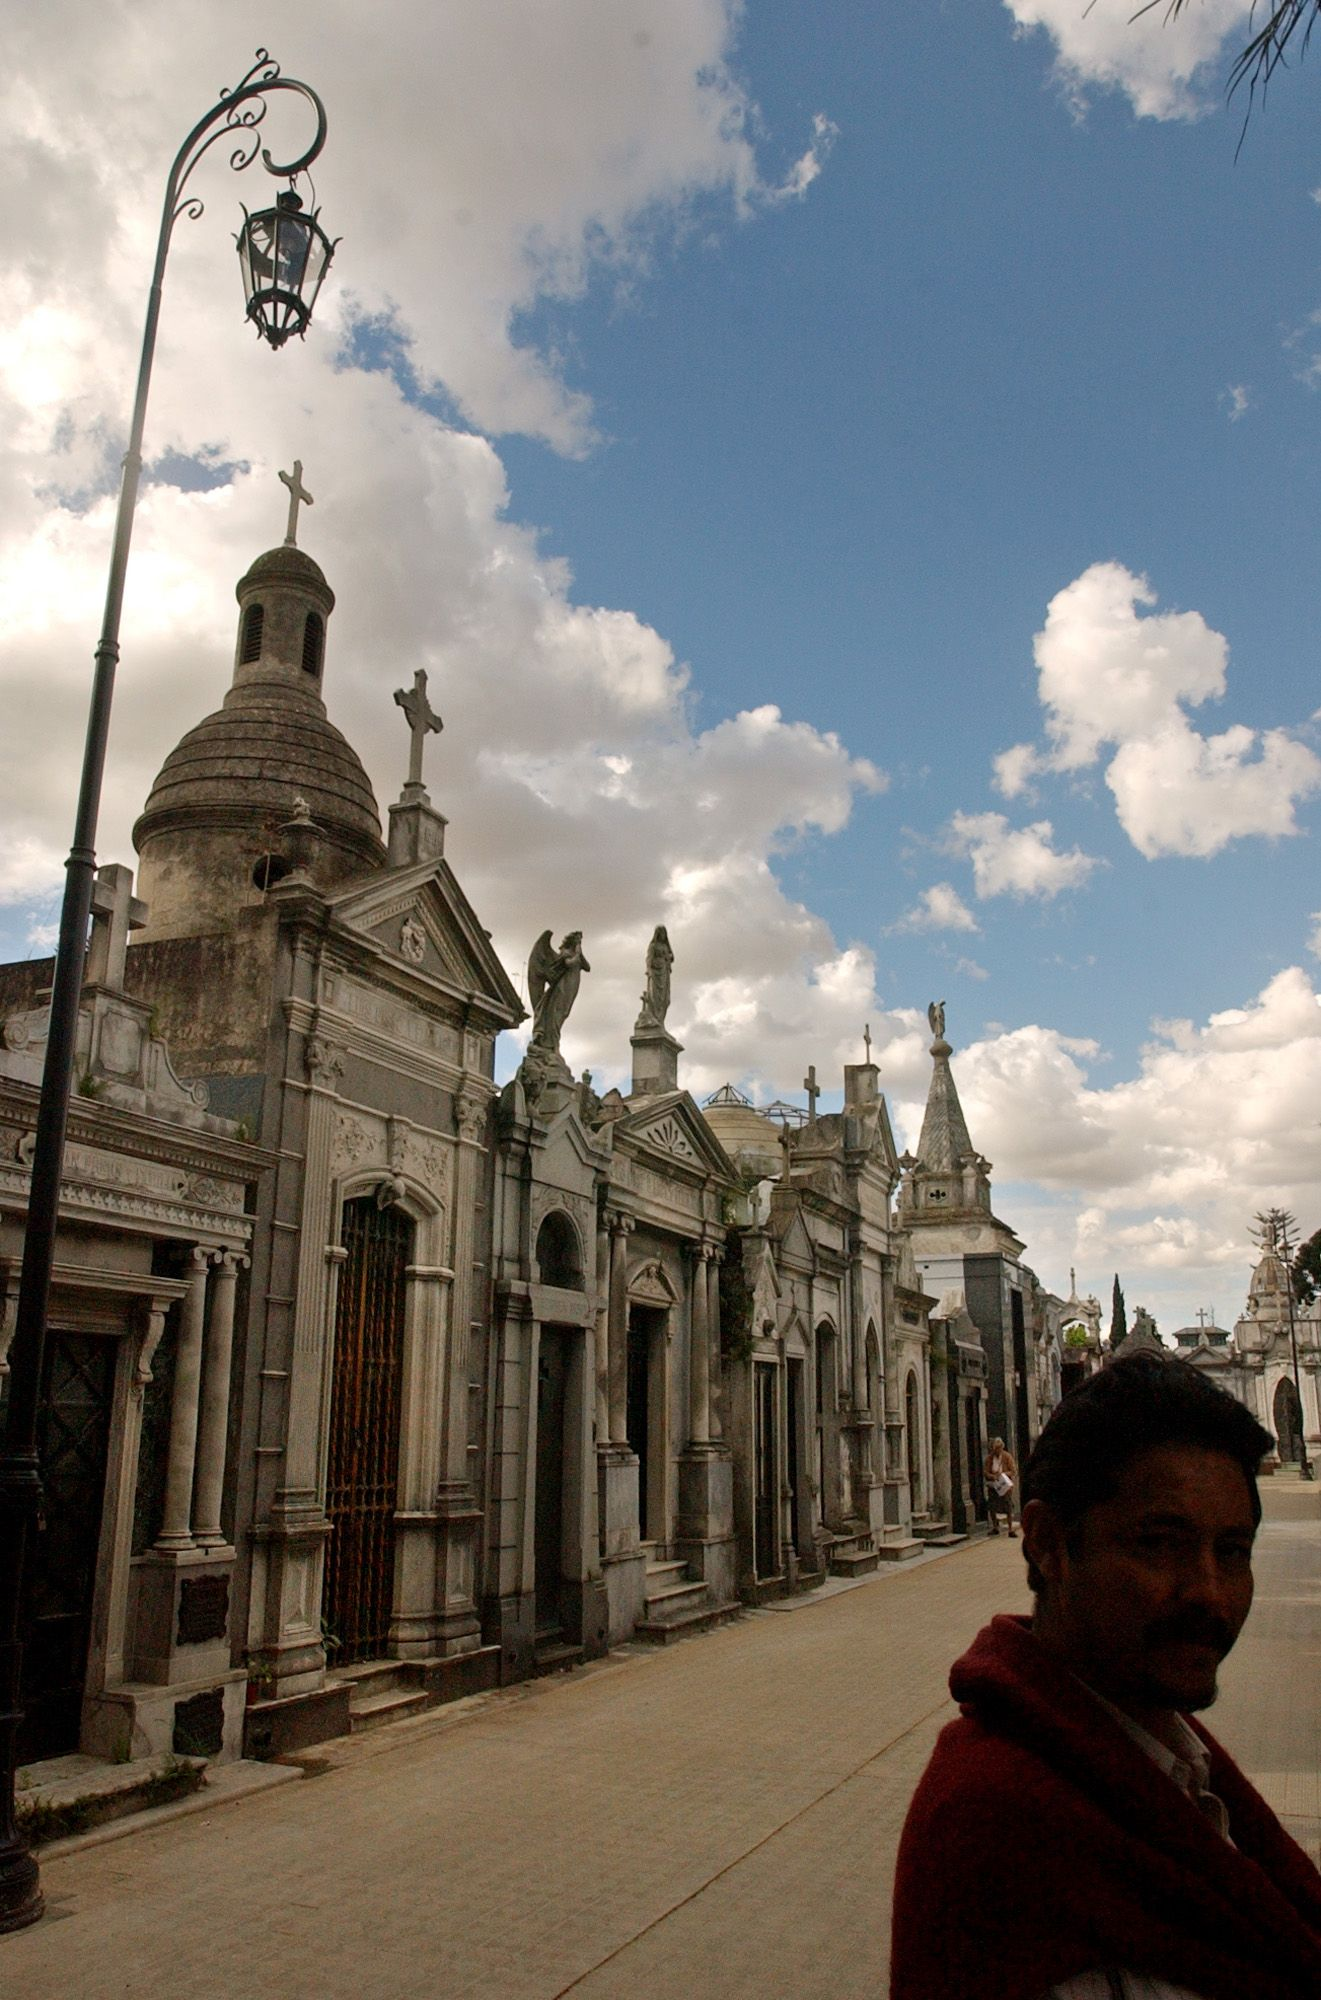 Tourists arrive to Recoleta cemetery,  the posh resting place for Buenos Aires' rich and powerful, to visit the tomb of Evita Peron, the wife of former Argentina's strongman Juan Peron, Nov. 19, 2003.  Evita's tomb, like Gardel's, has become something of a shrine. (AP Photo/Natacha Pisarenko)